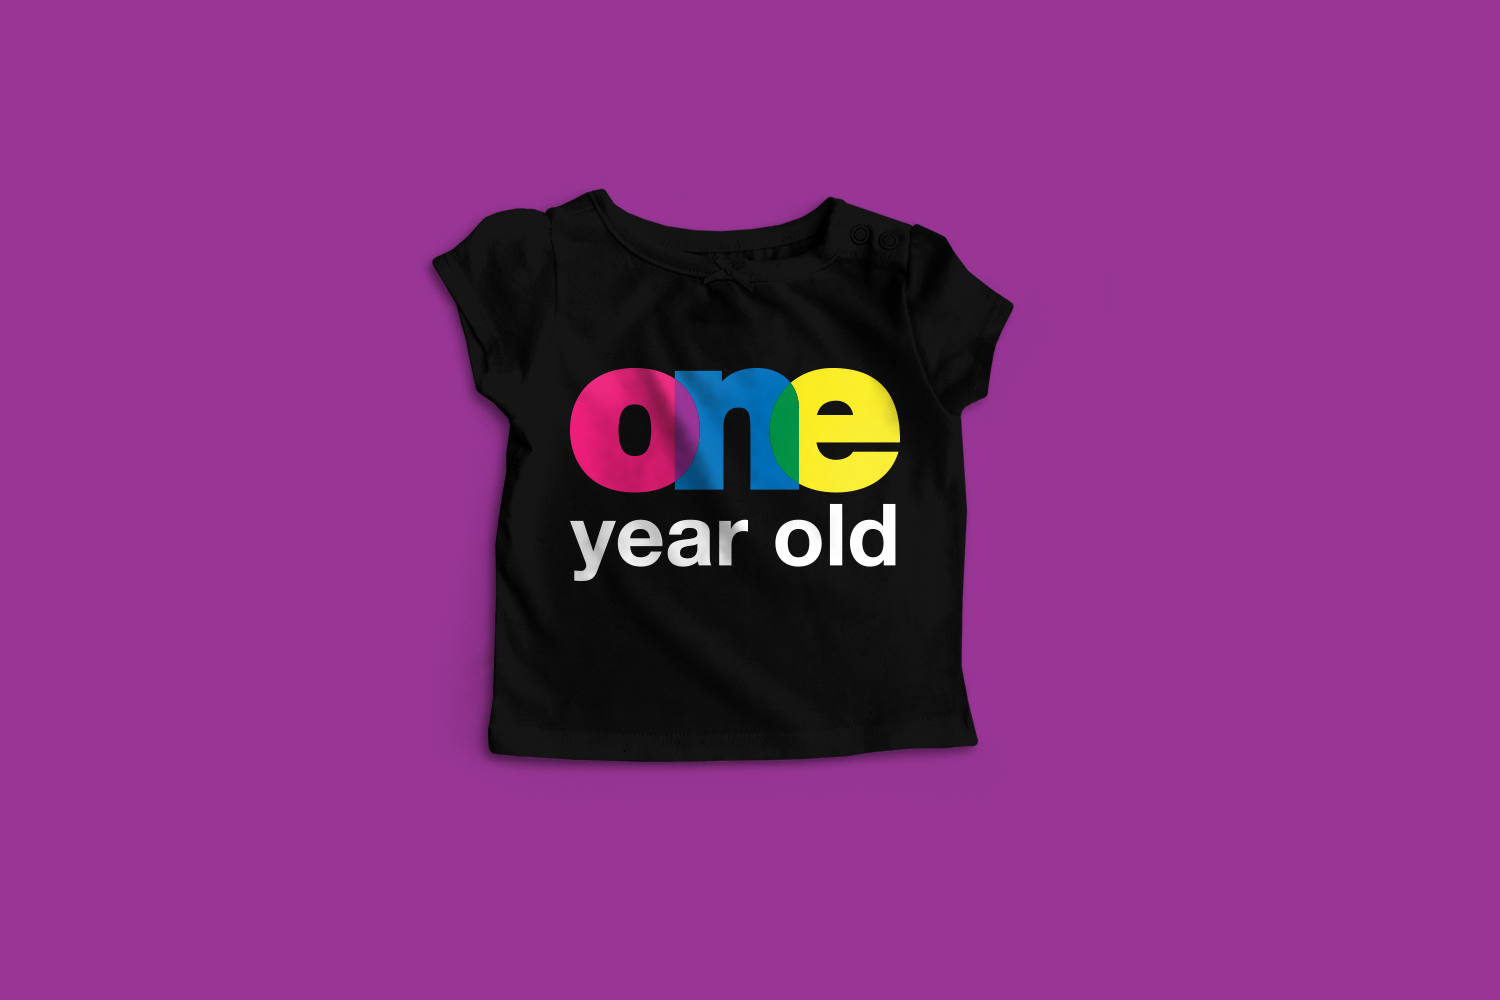 Download Free One Year Old Graphic By Designedbygeeks Creative Fabrica for Cricut Explore, Silhouette and other cutting machines.